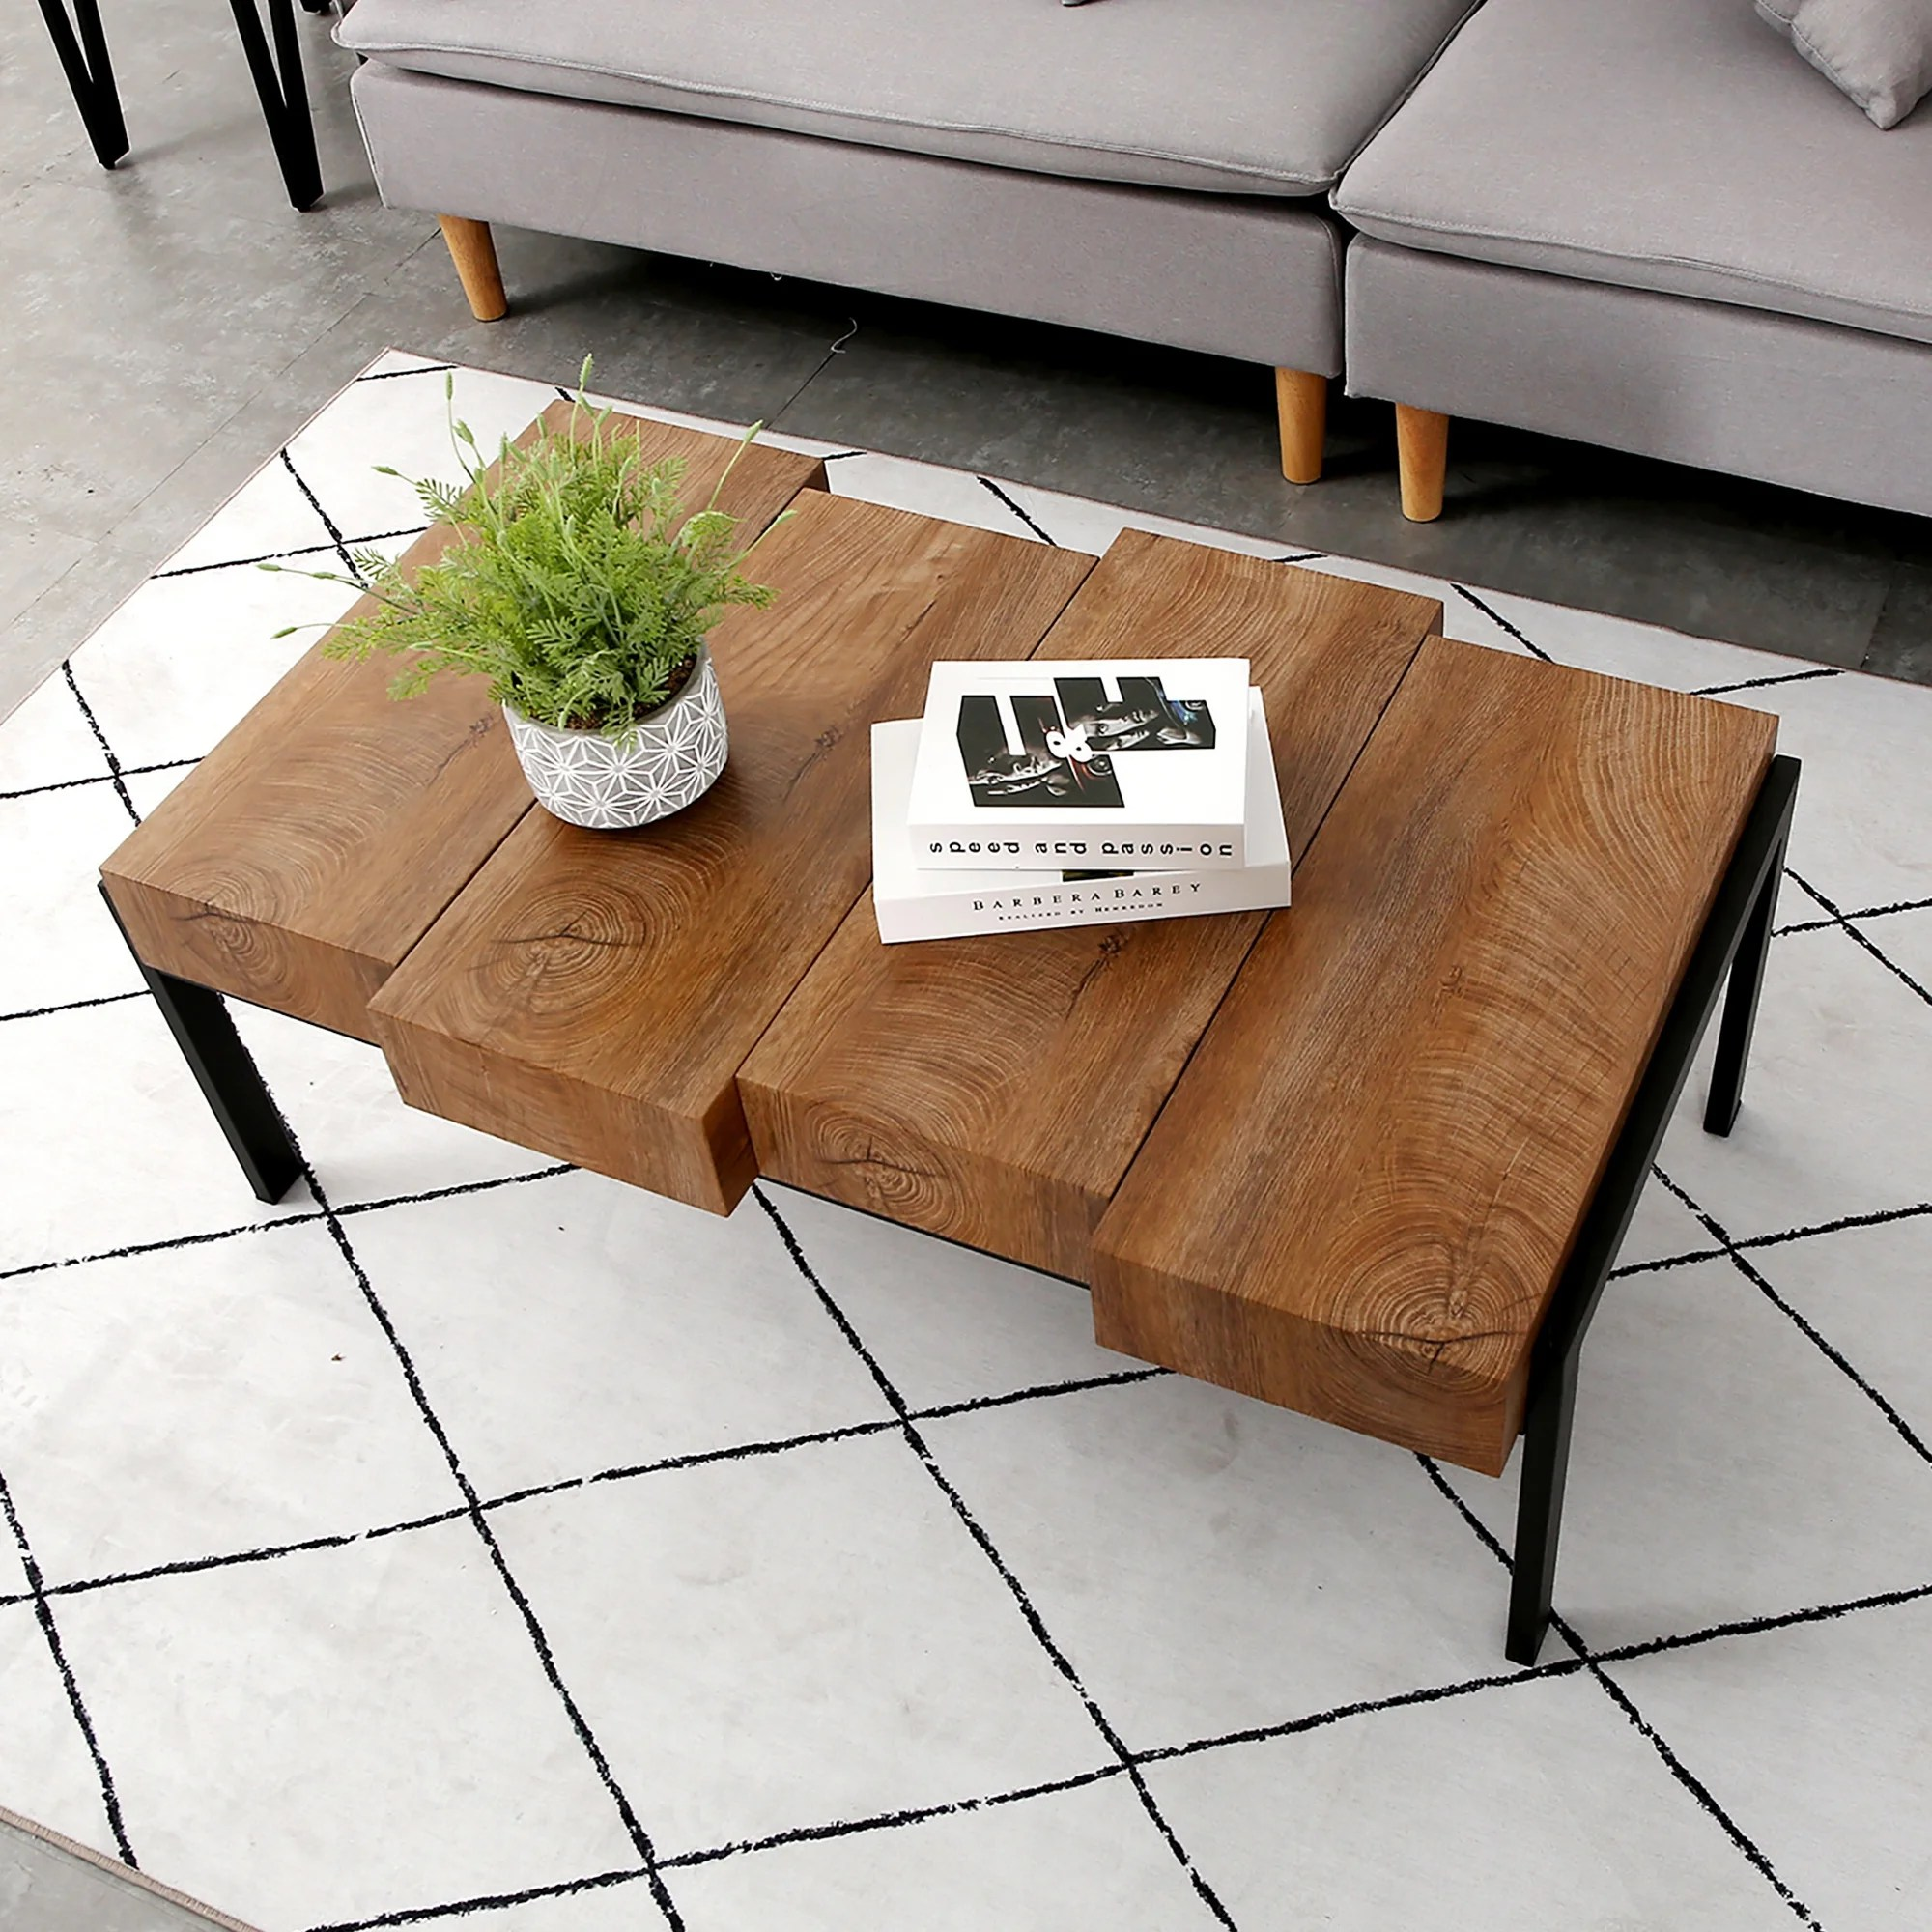 Modern Mid Century Coffee Table For Living Room Rustic Wood Rectangular Coffee Table Accent Table Metal Frame Overstock 28753576